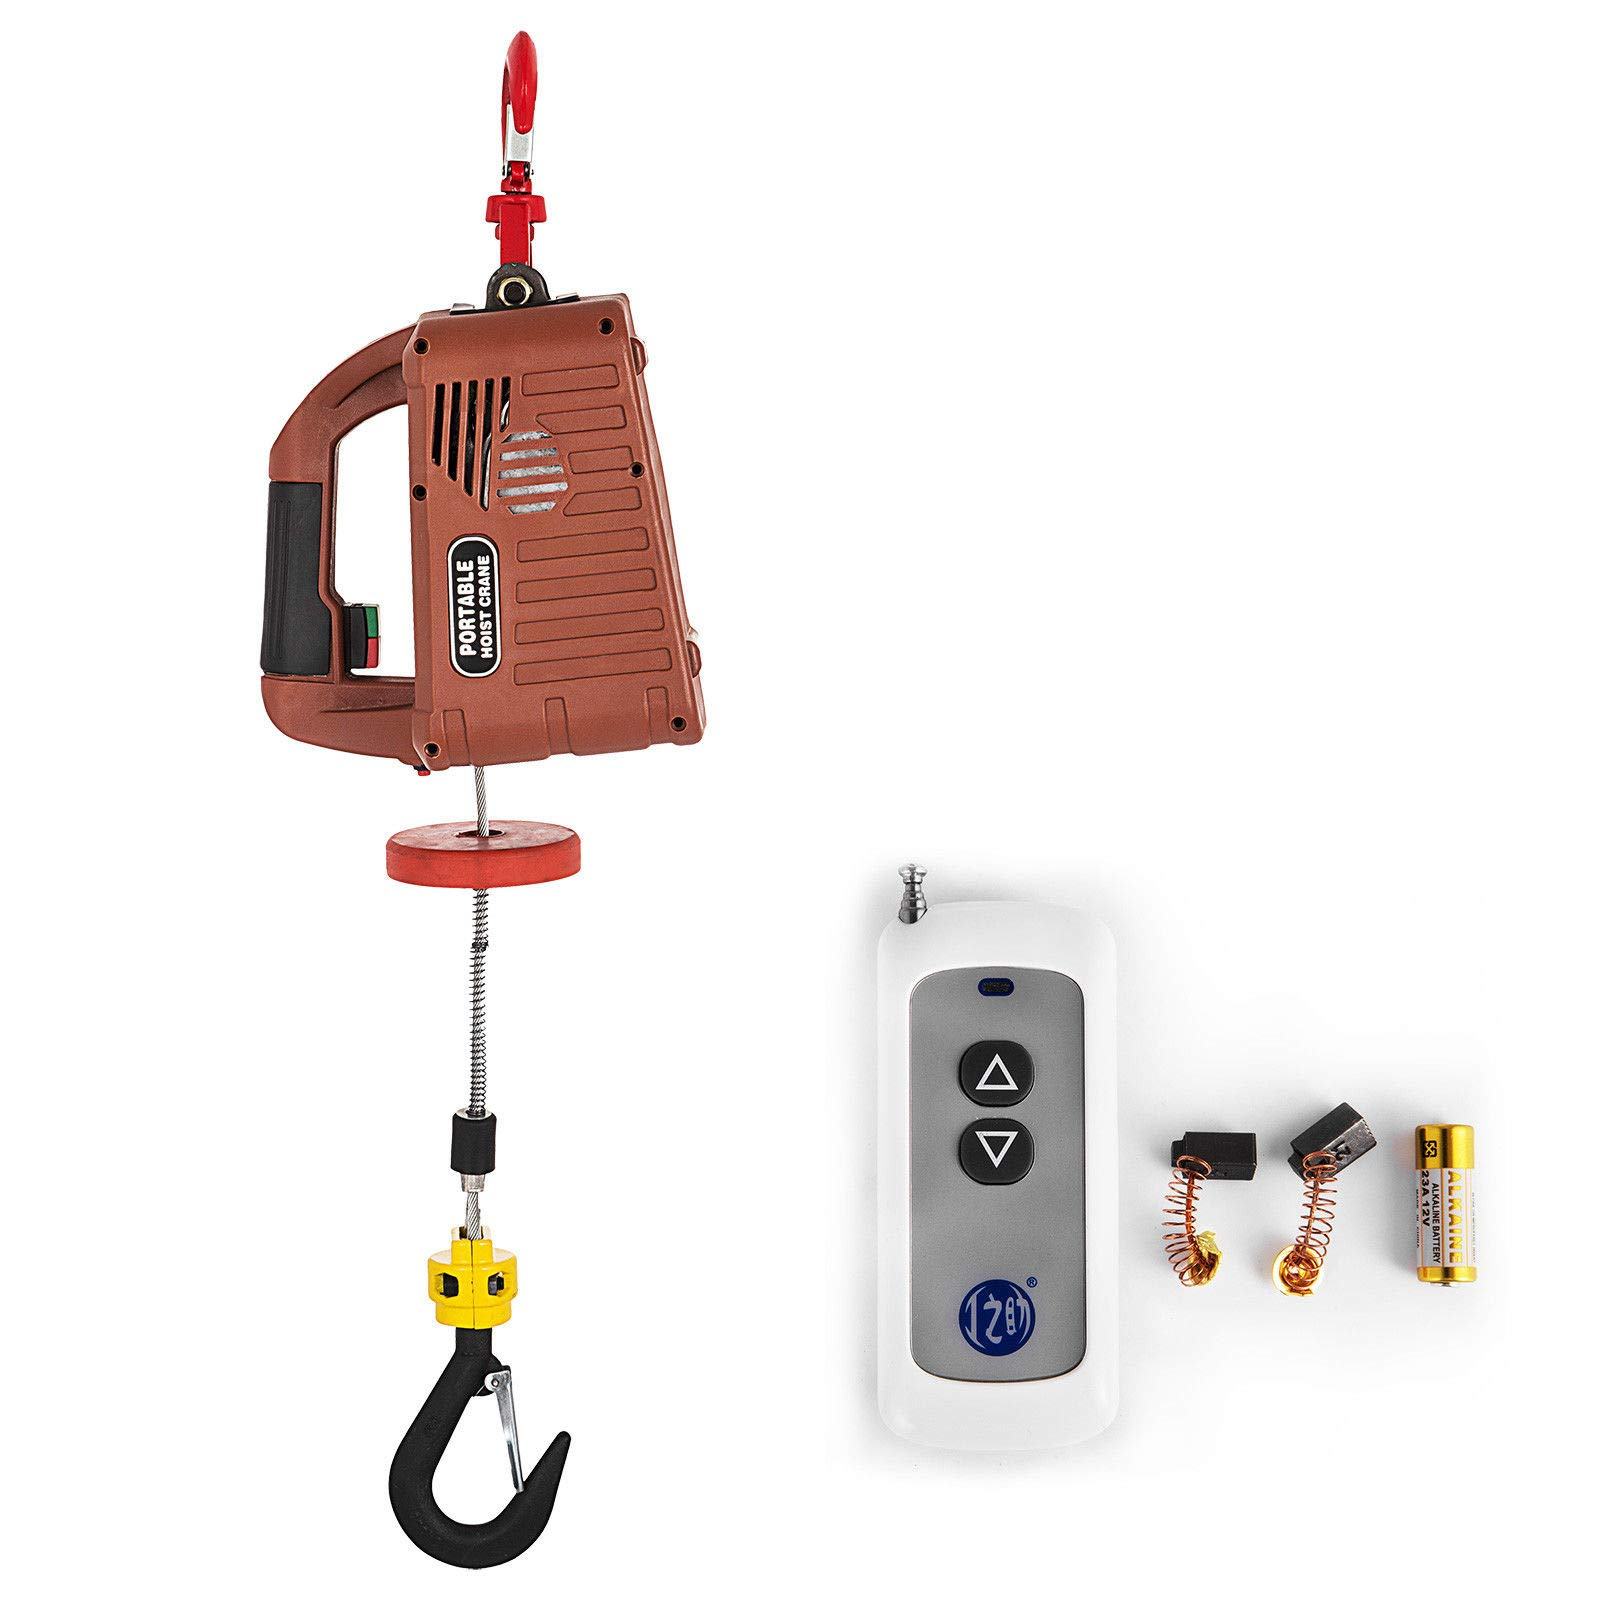 Bestauto Electric Hoist Winch AC Corded Version Lift Electric Hoist 885000 PullzAll Hand Held 500kg Electric Hoist for Lifting by Best In Auto